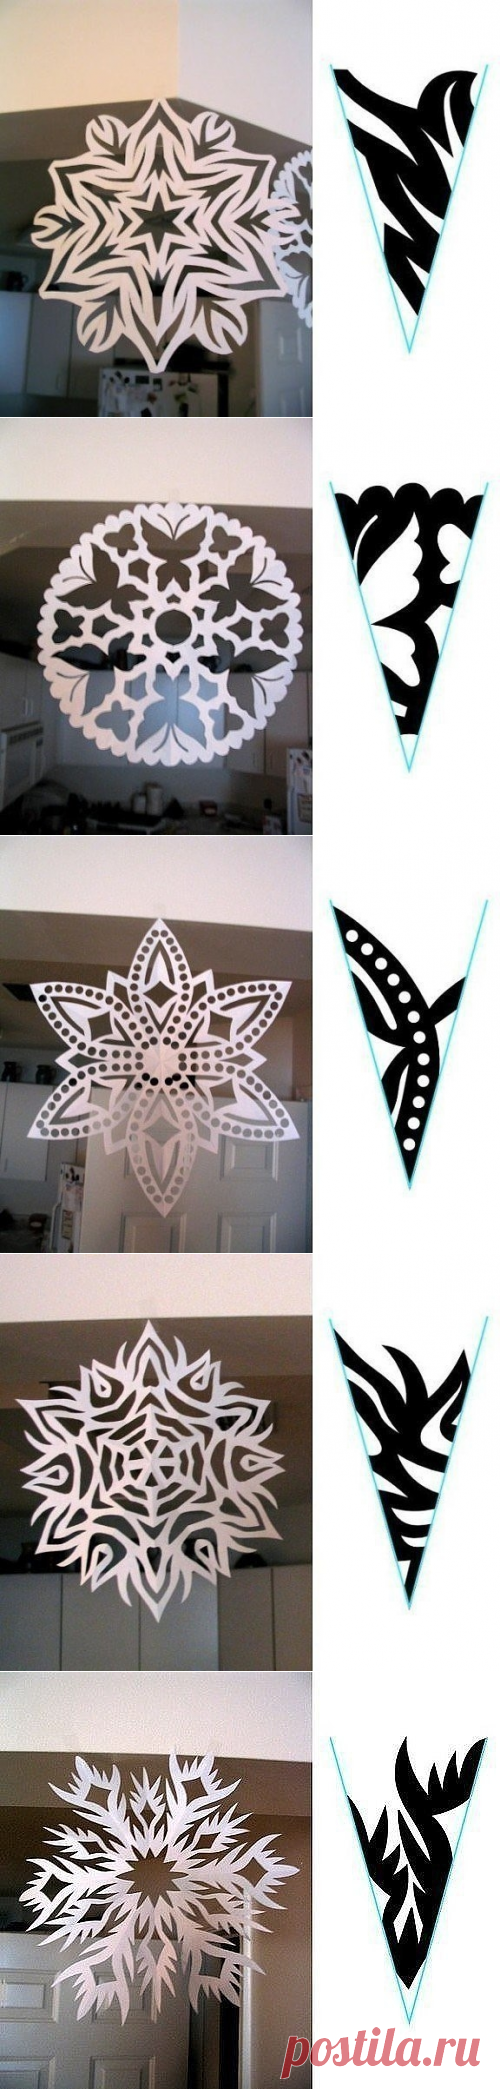 Beautiful snowflakes from paper the hands